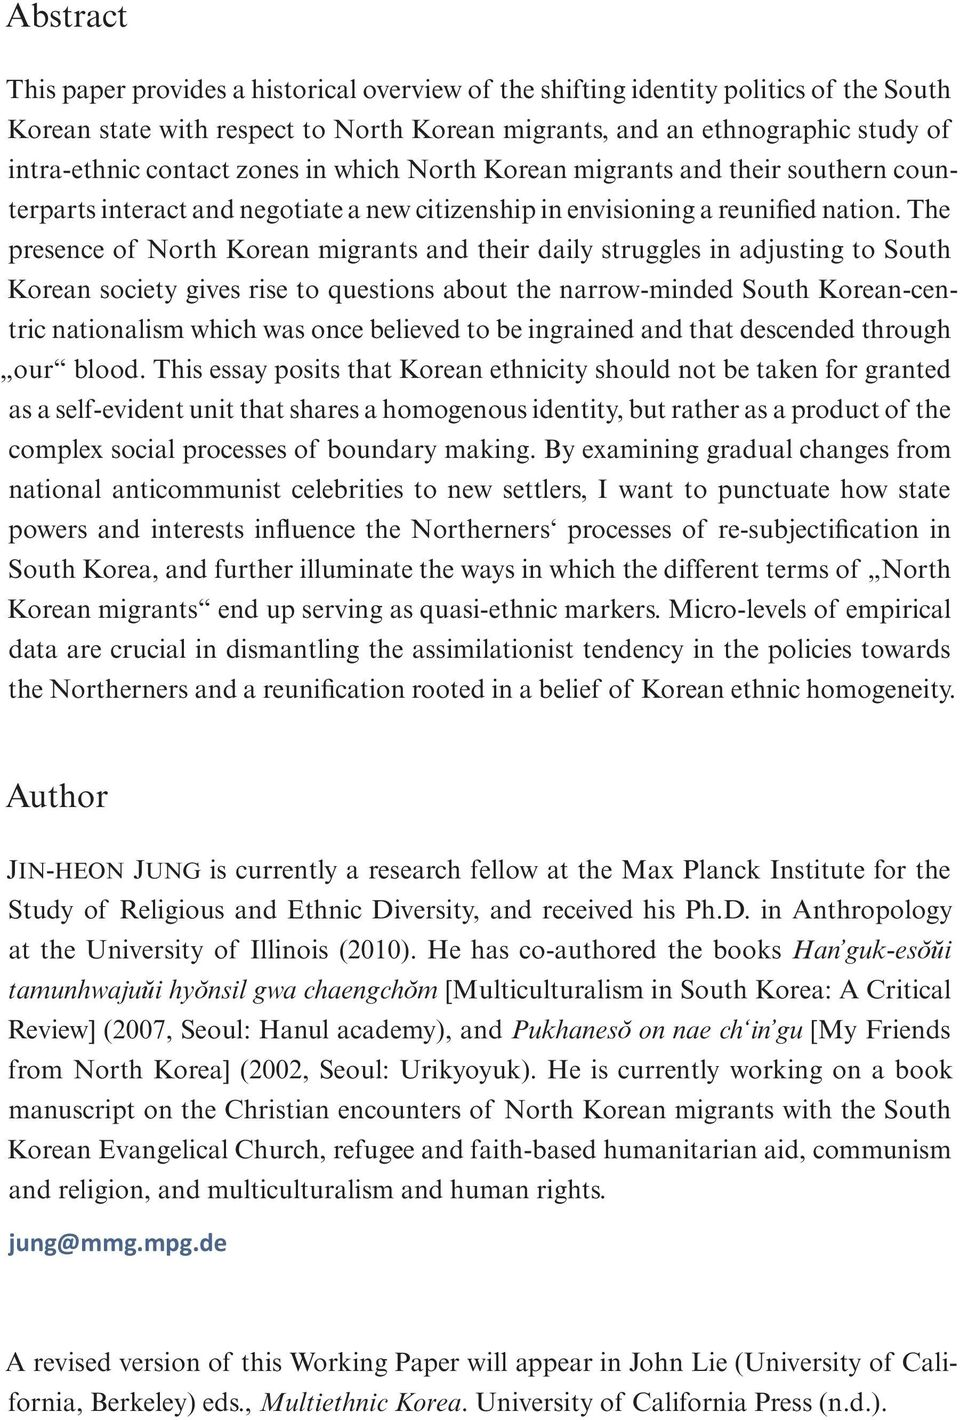 The presence of North Korean migrants and their daily struggles in adjusting to South Korean society gives rise to questions about the narrow-minded South Korean-centric nationalism which was once